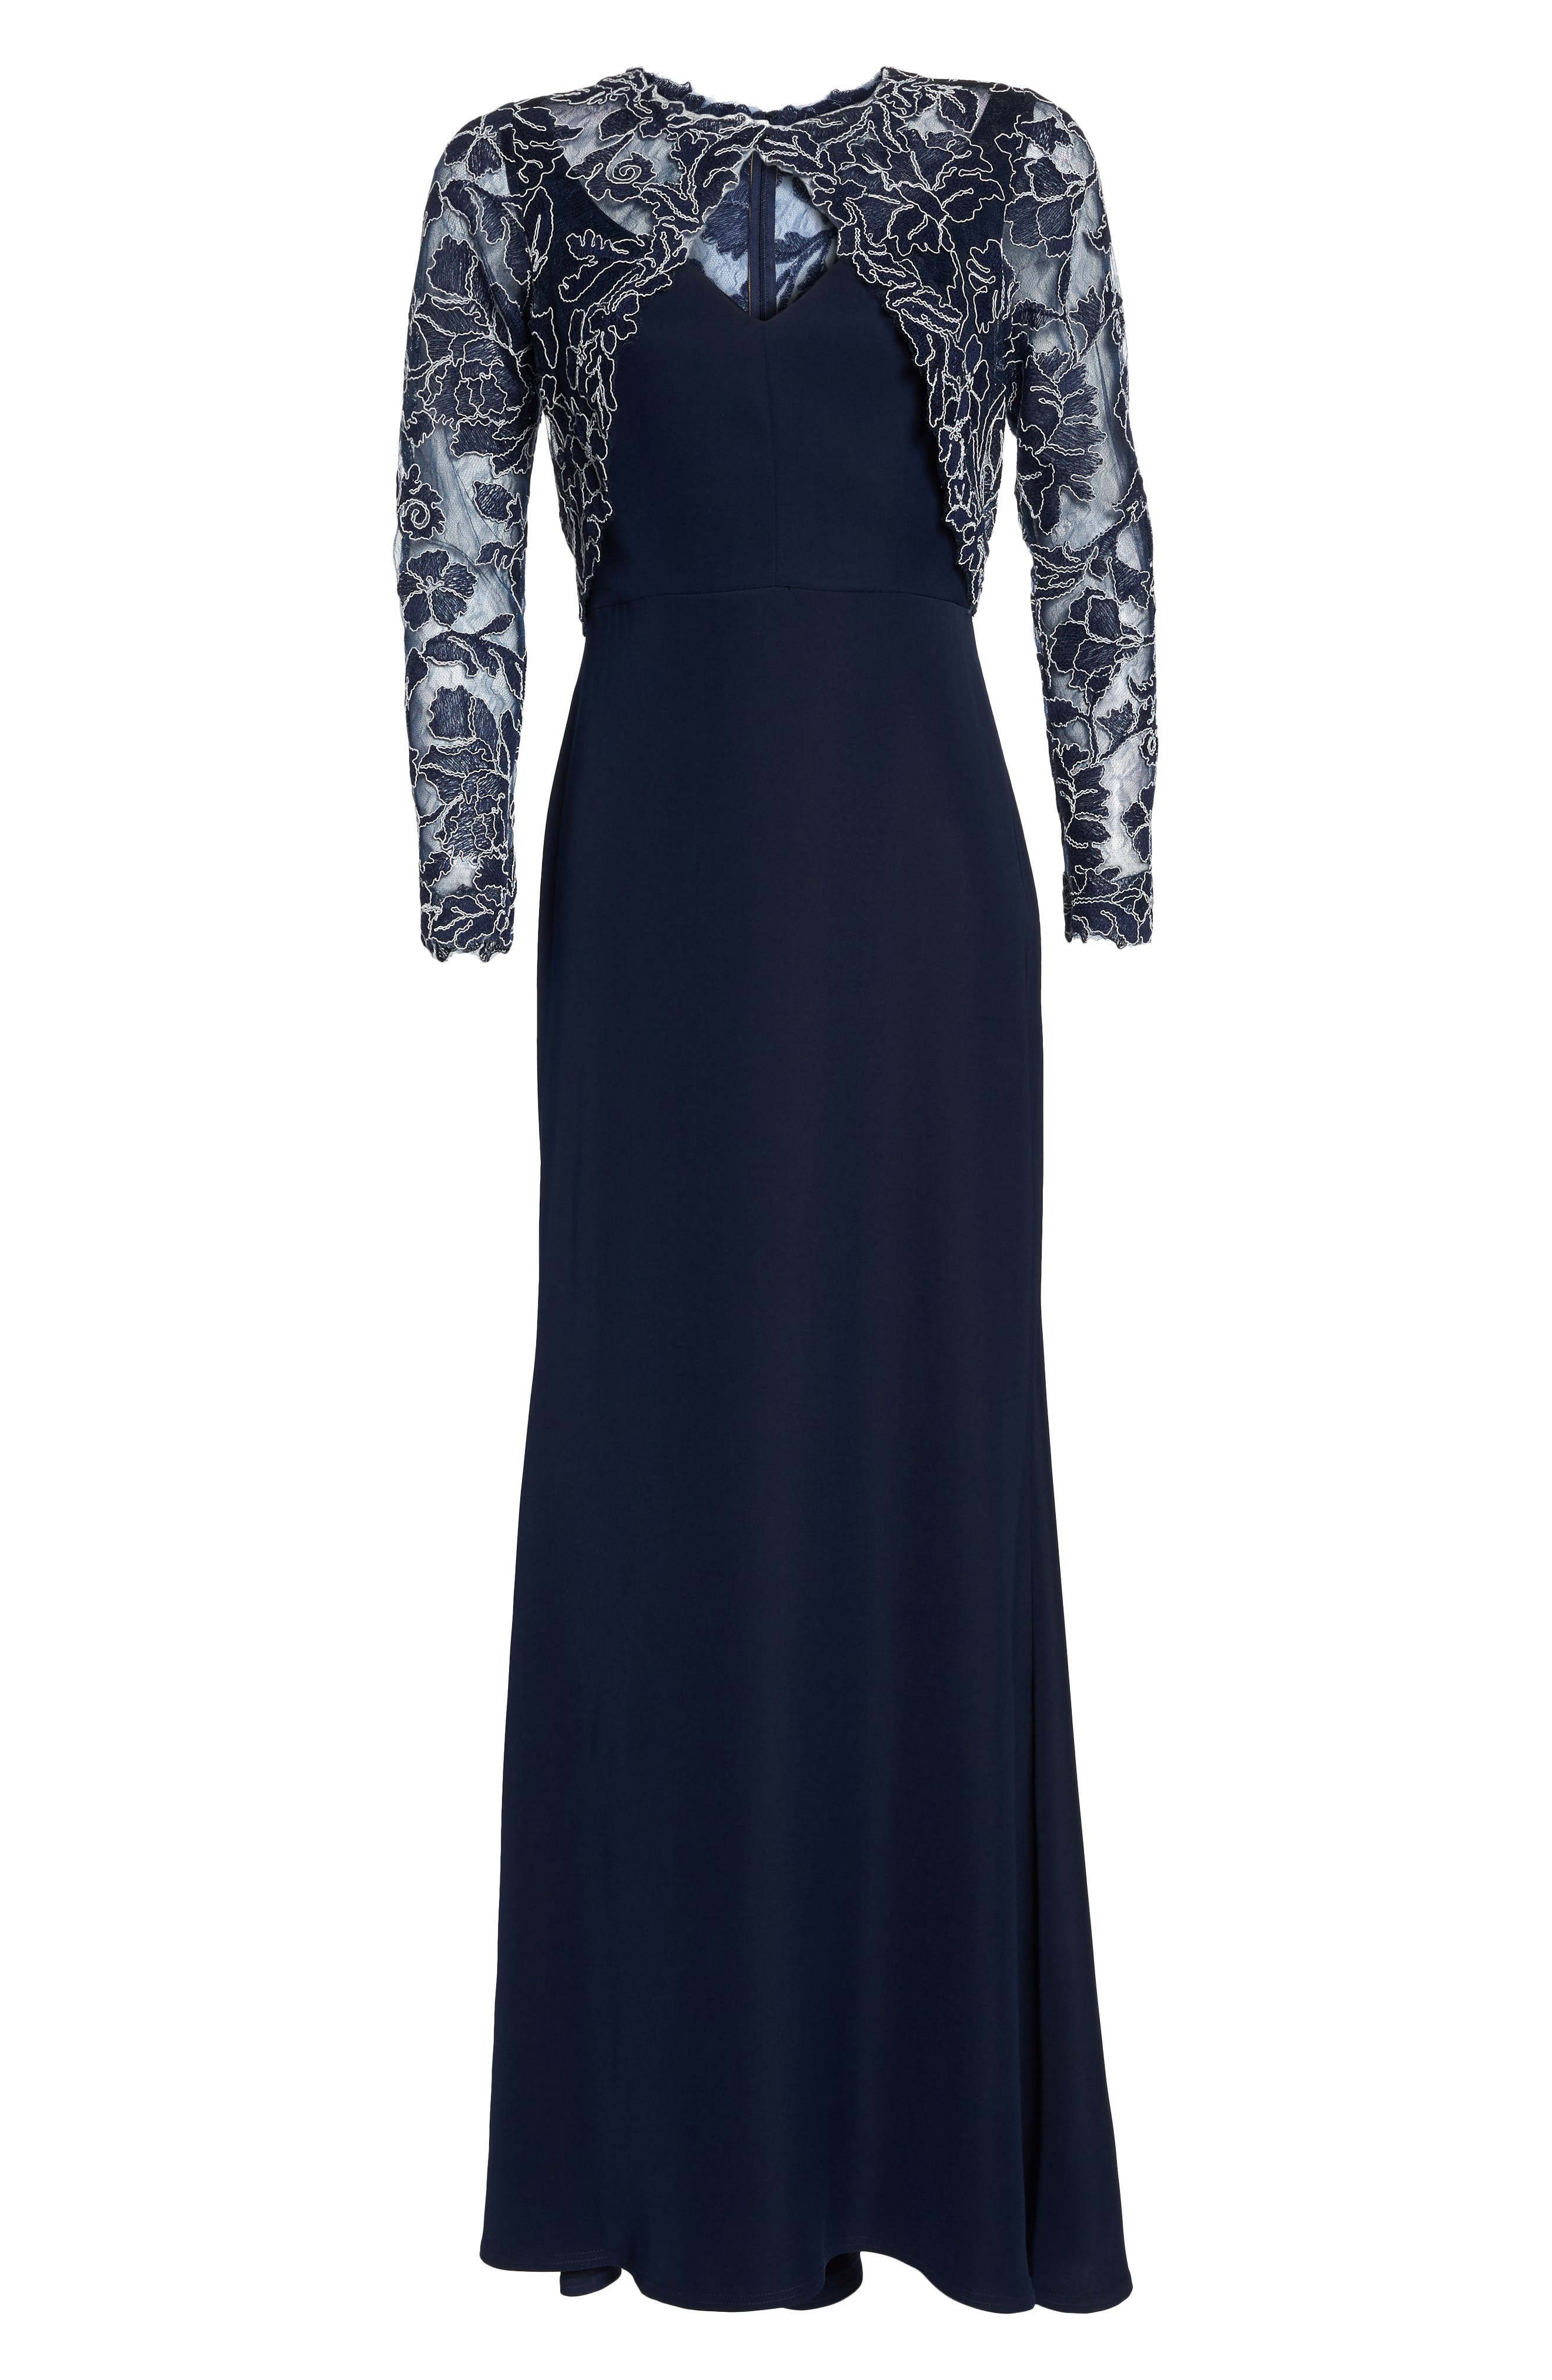 TADASHI SHOJI, Crepe & Embroidered Lace Gown, Alternate thumbnail 7, color, NAVY/ IVORY